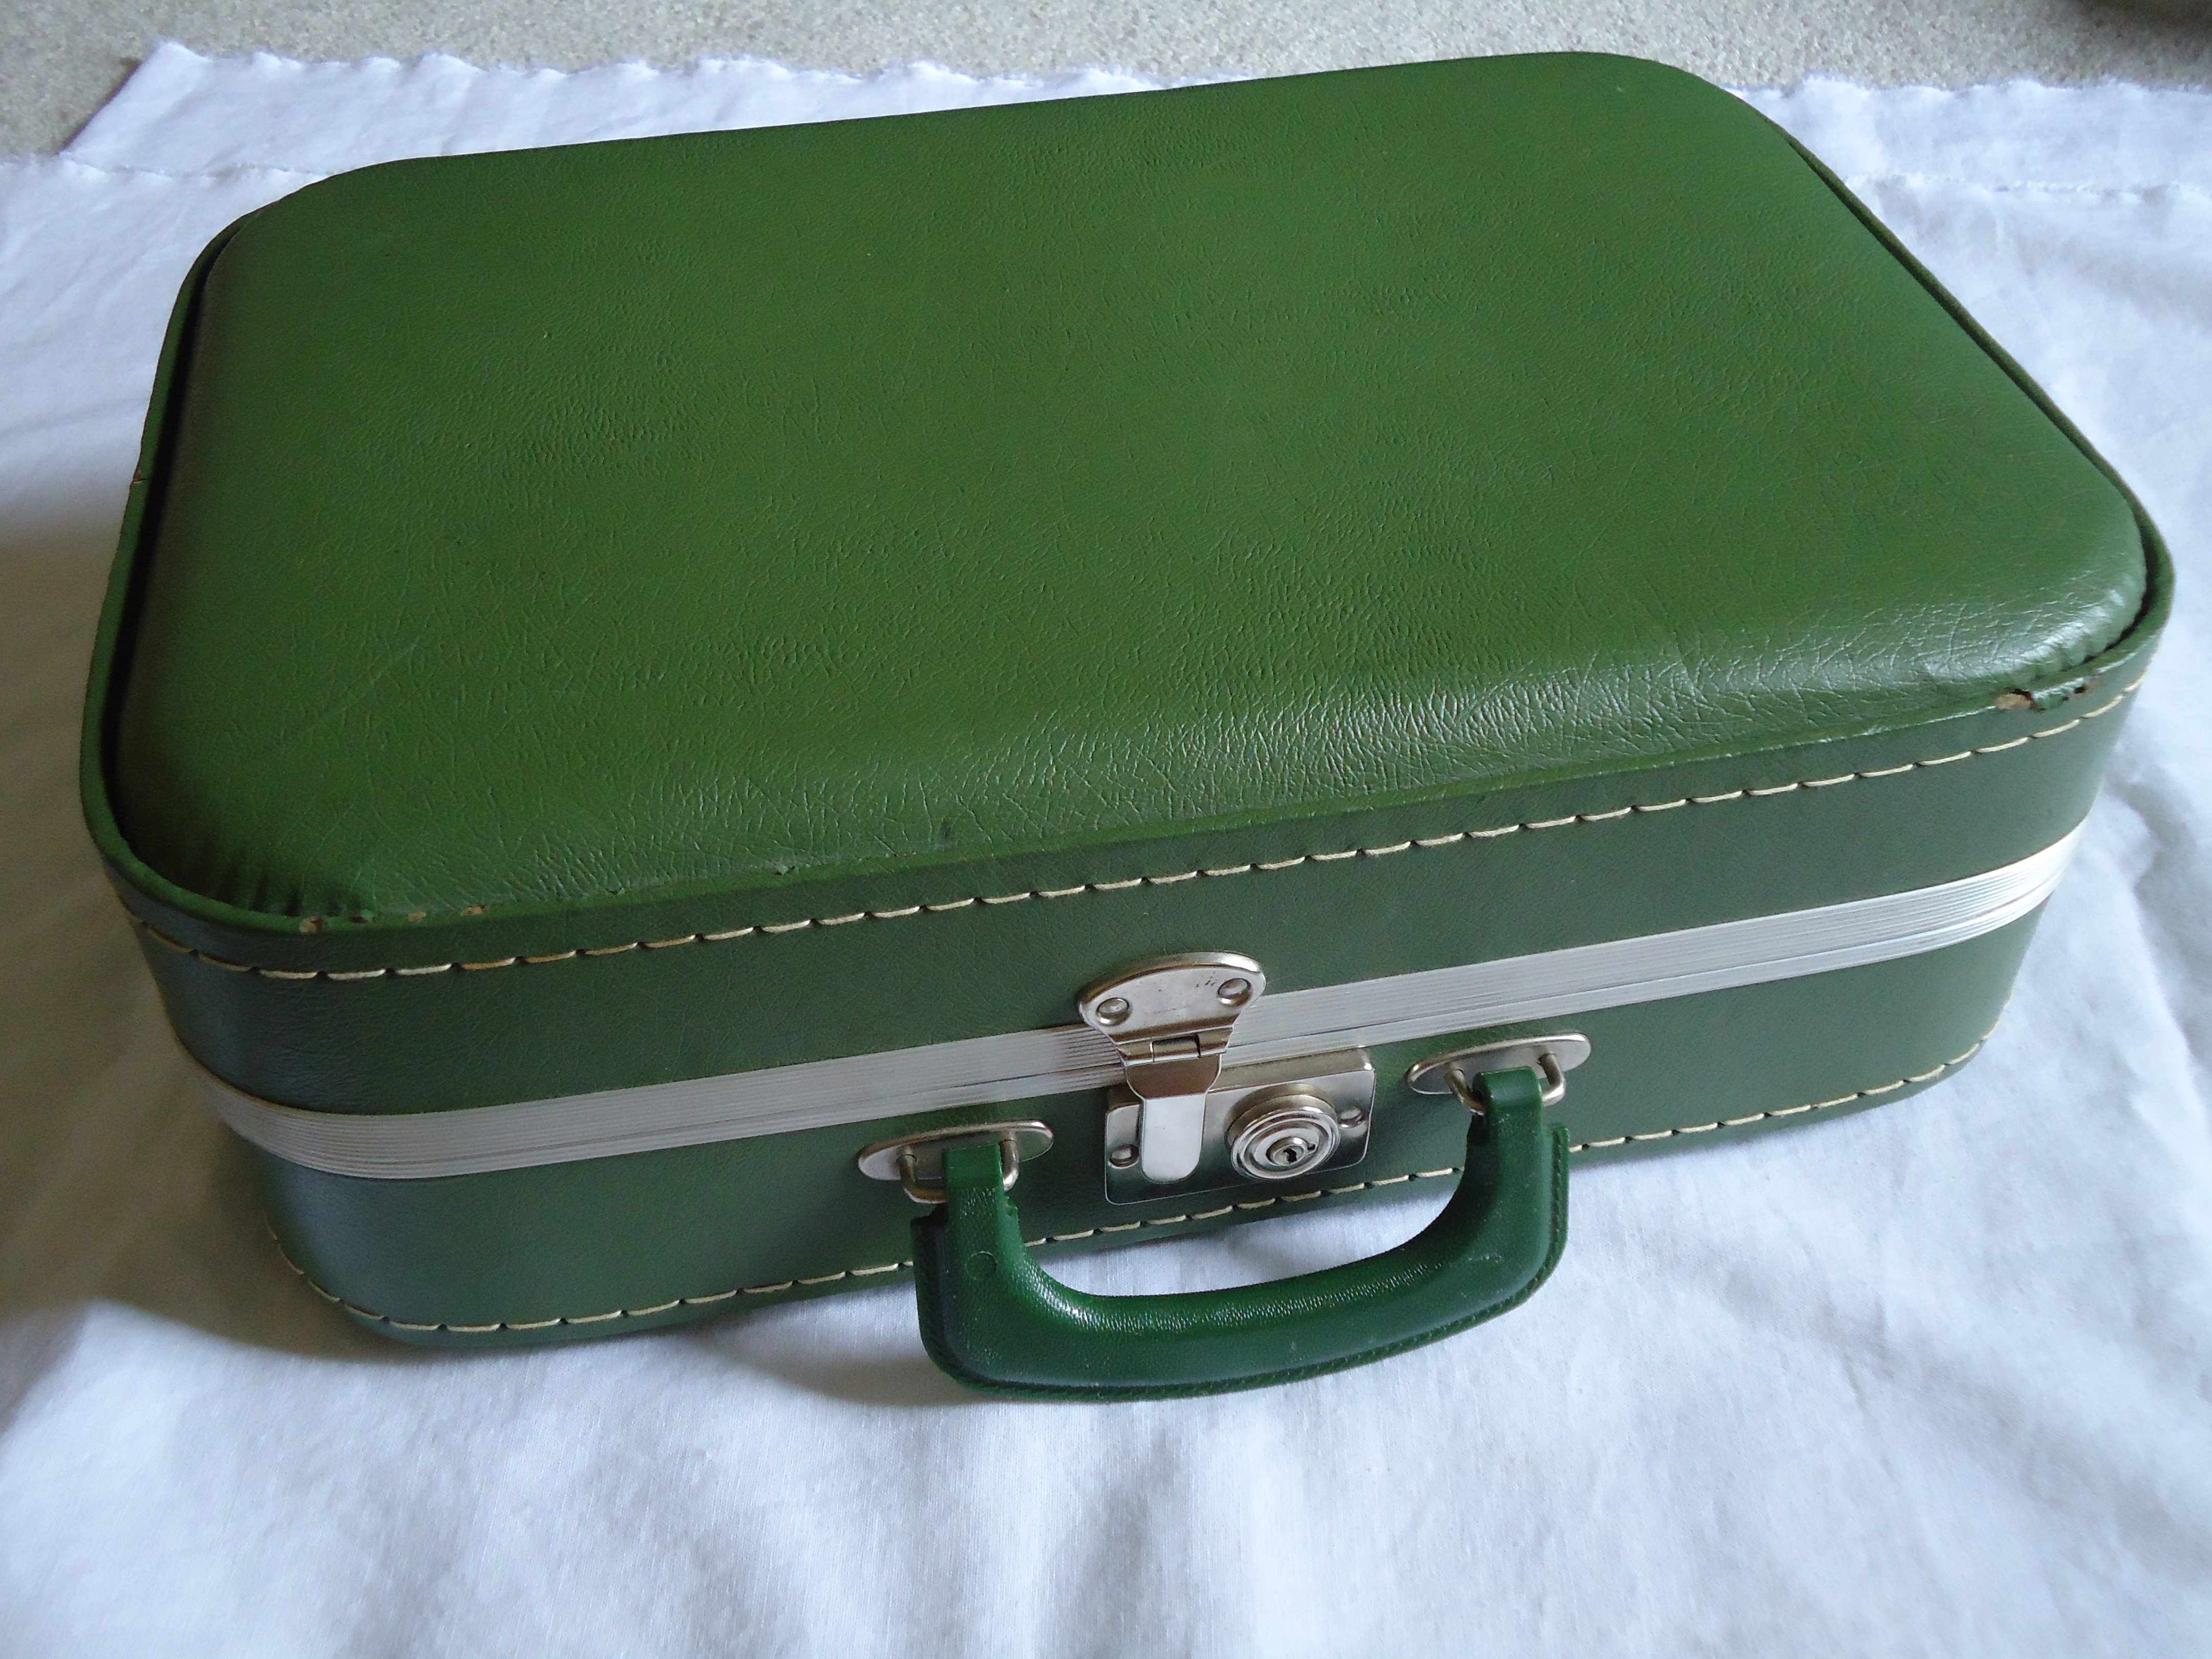 Vintage suitcase terri 39 s notebook for The vintage suitcase